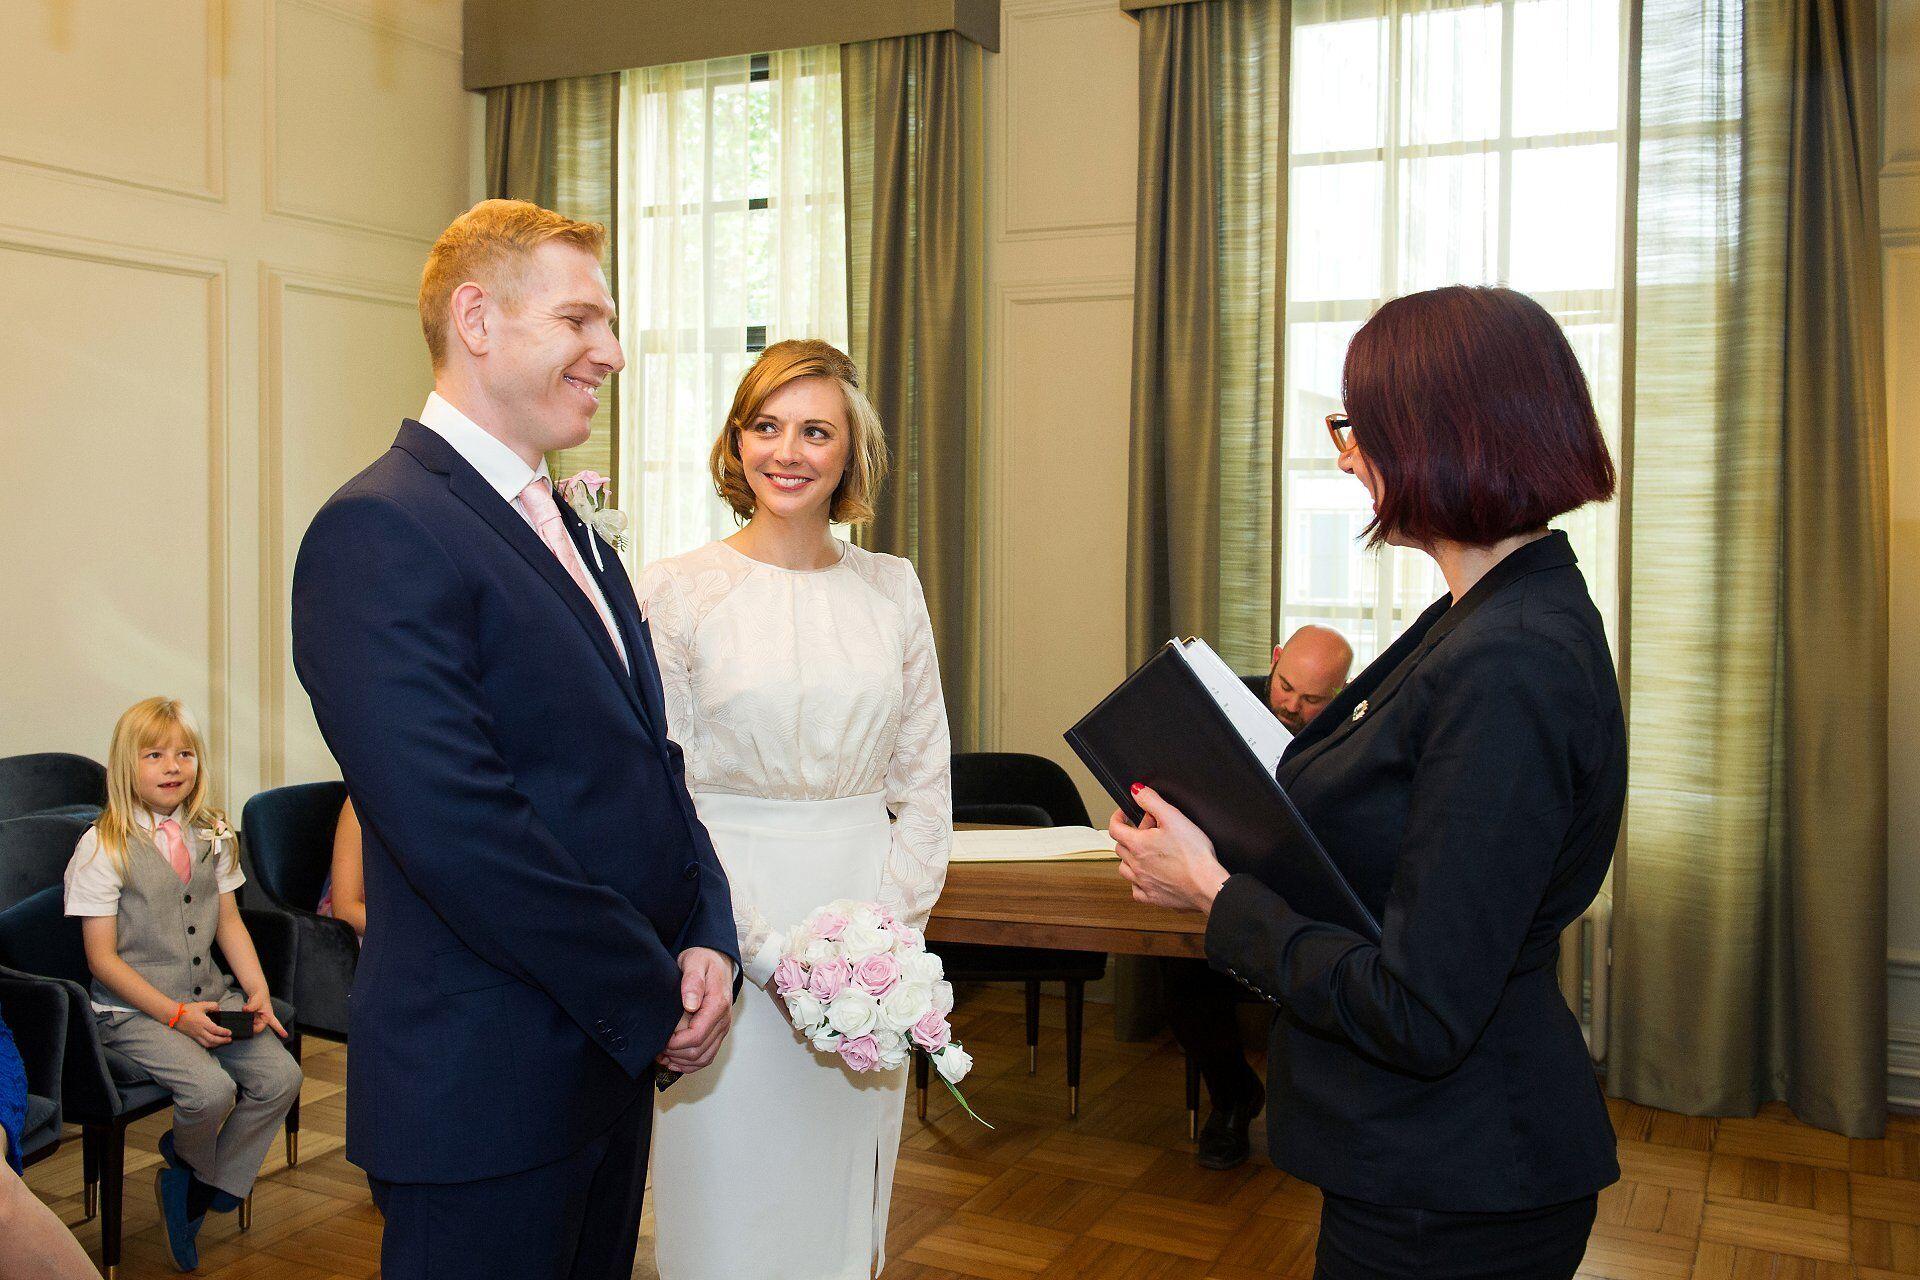 jewish civil wedding ceremony at old marylebone town hall